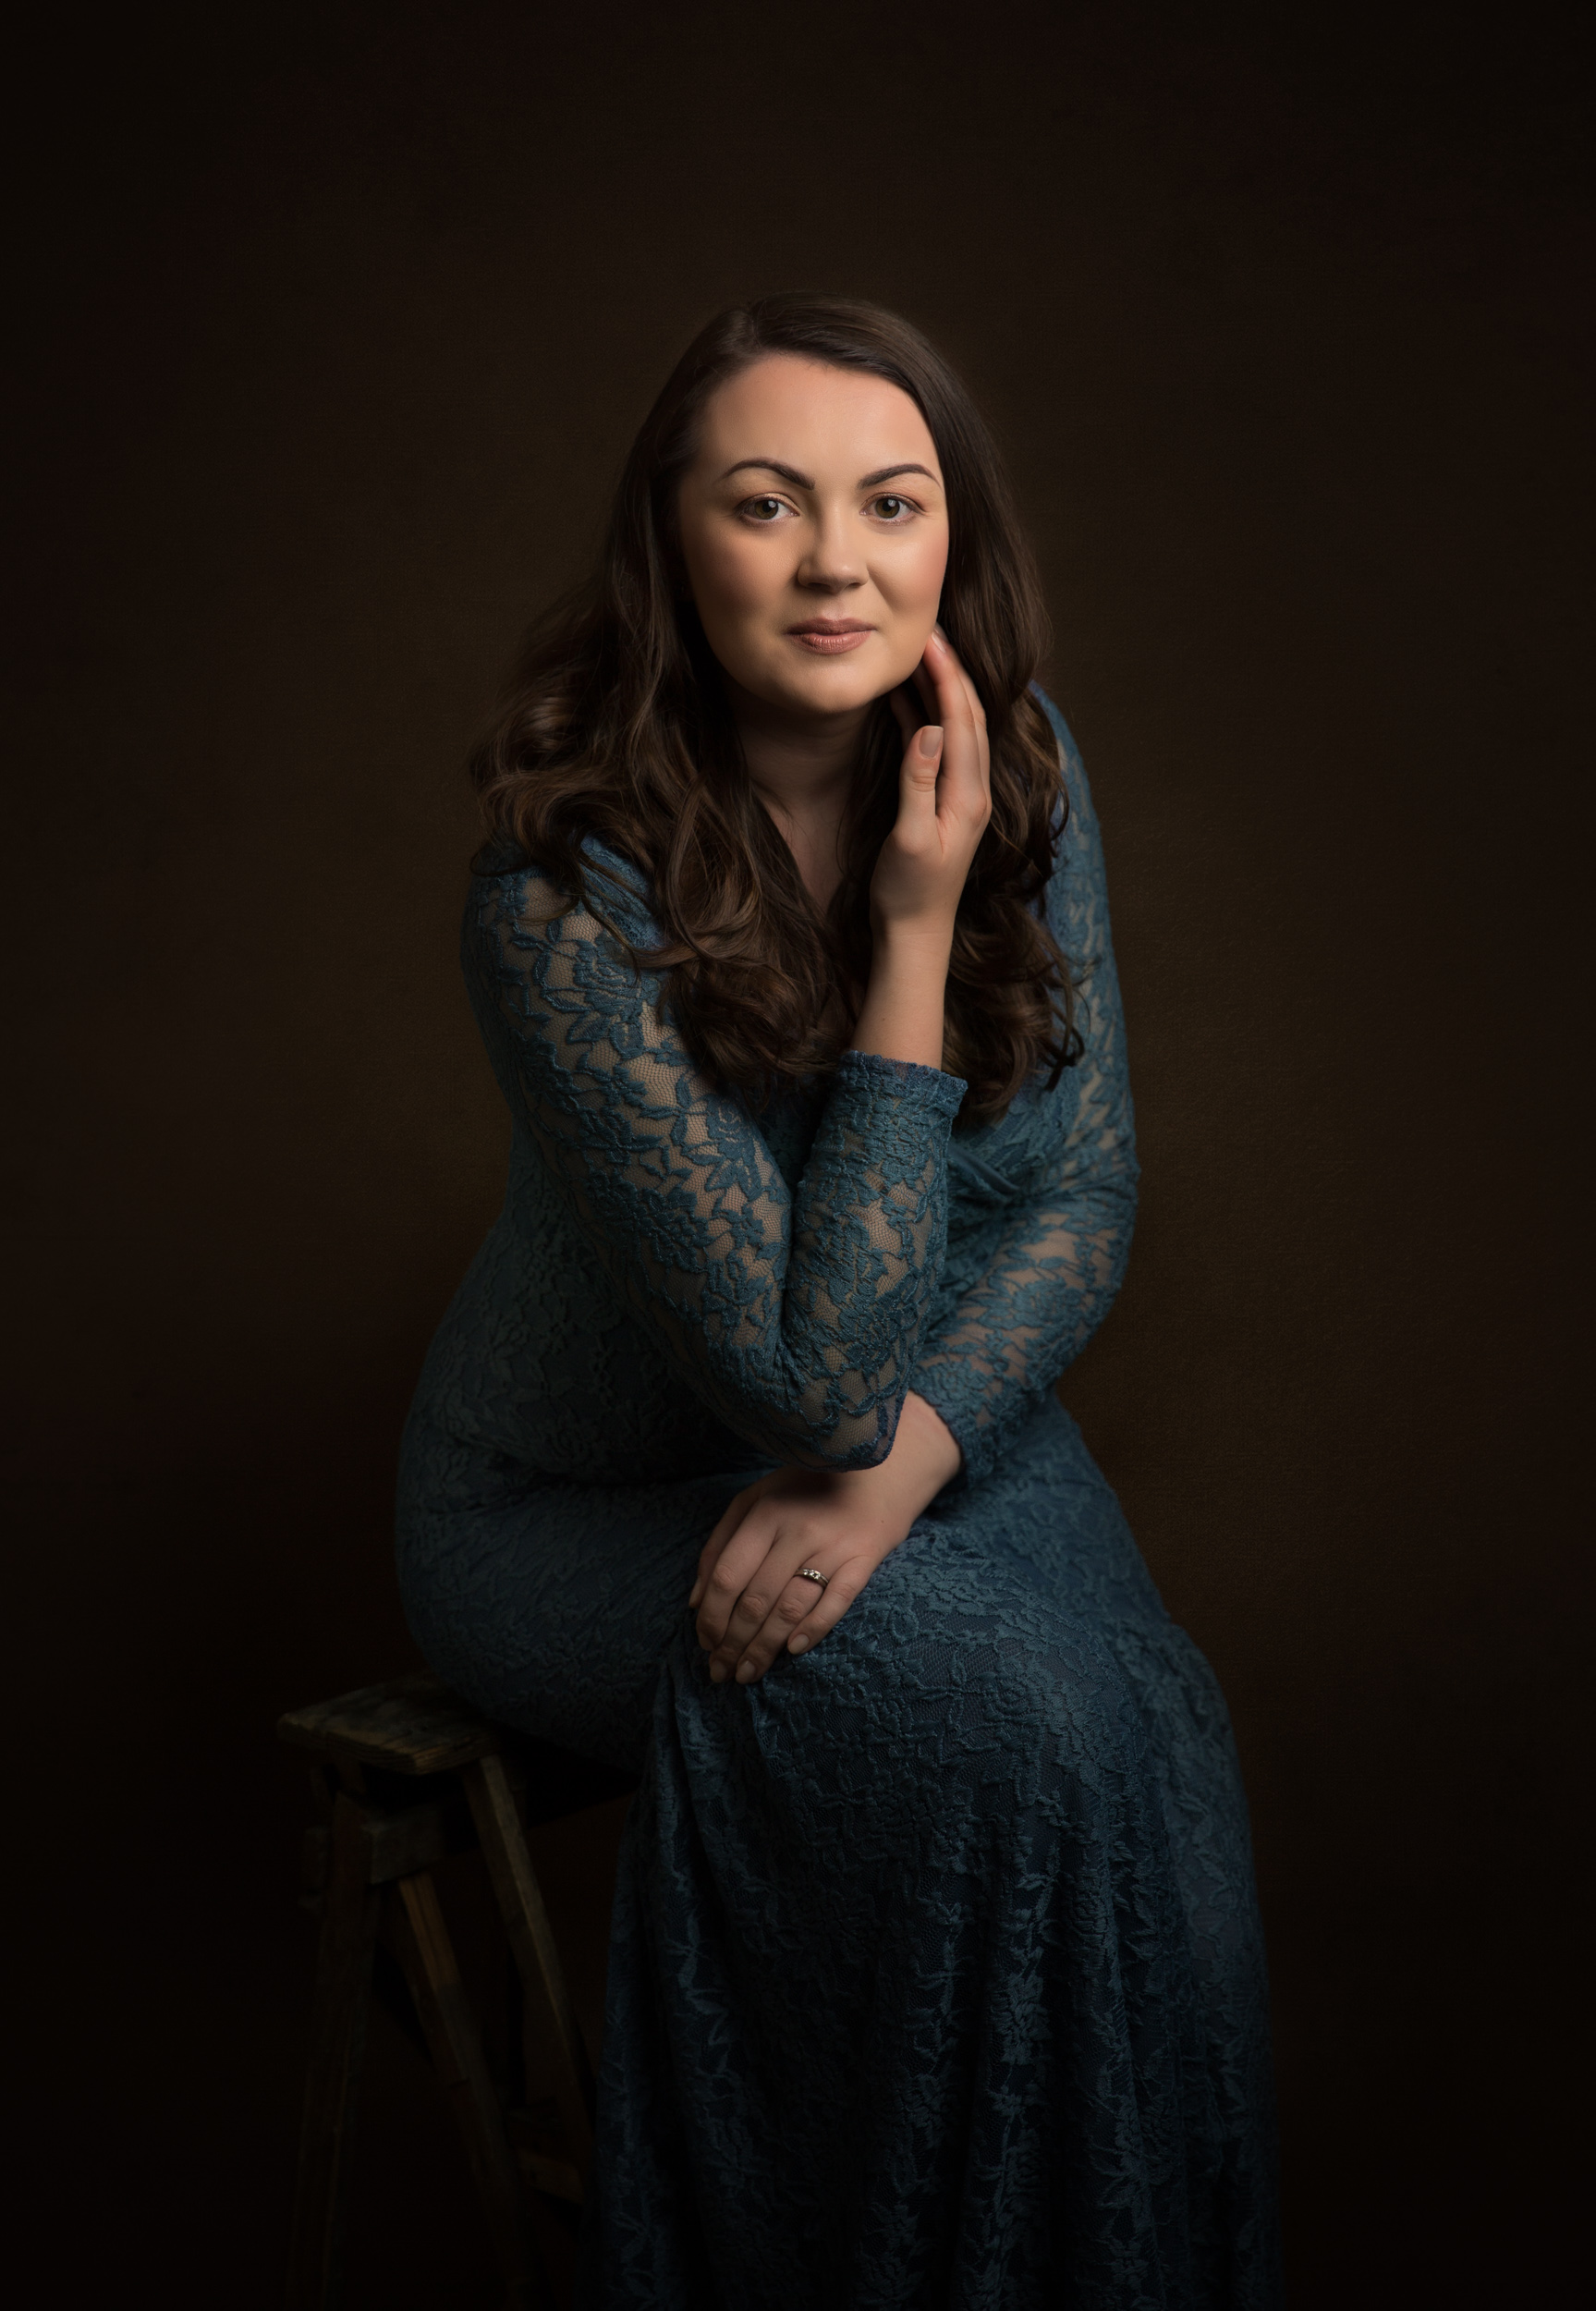 Image of a dark haired lady at her portrait session in Cheshire